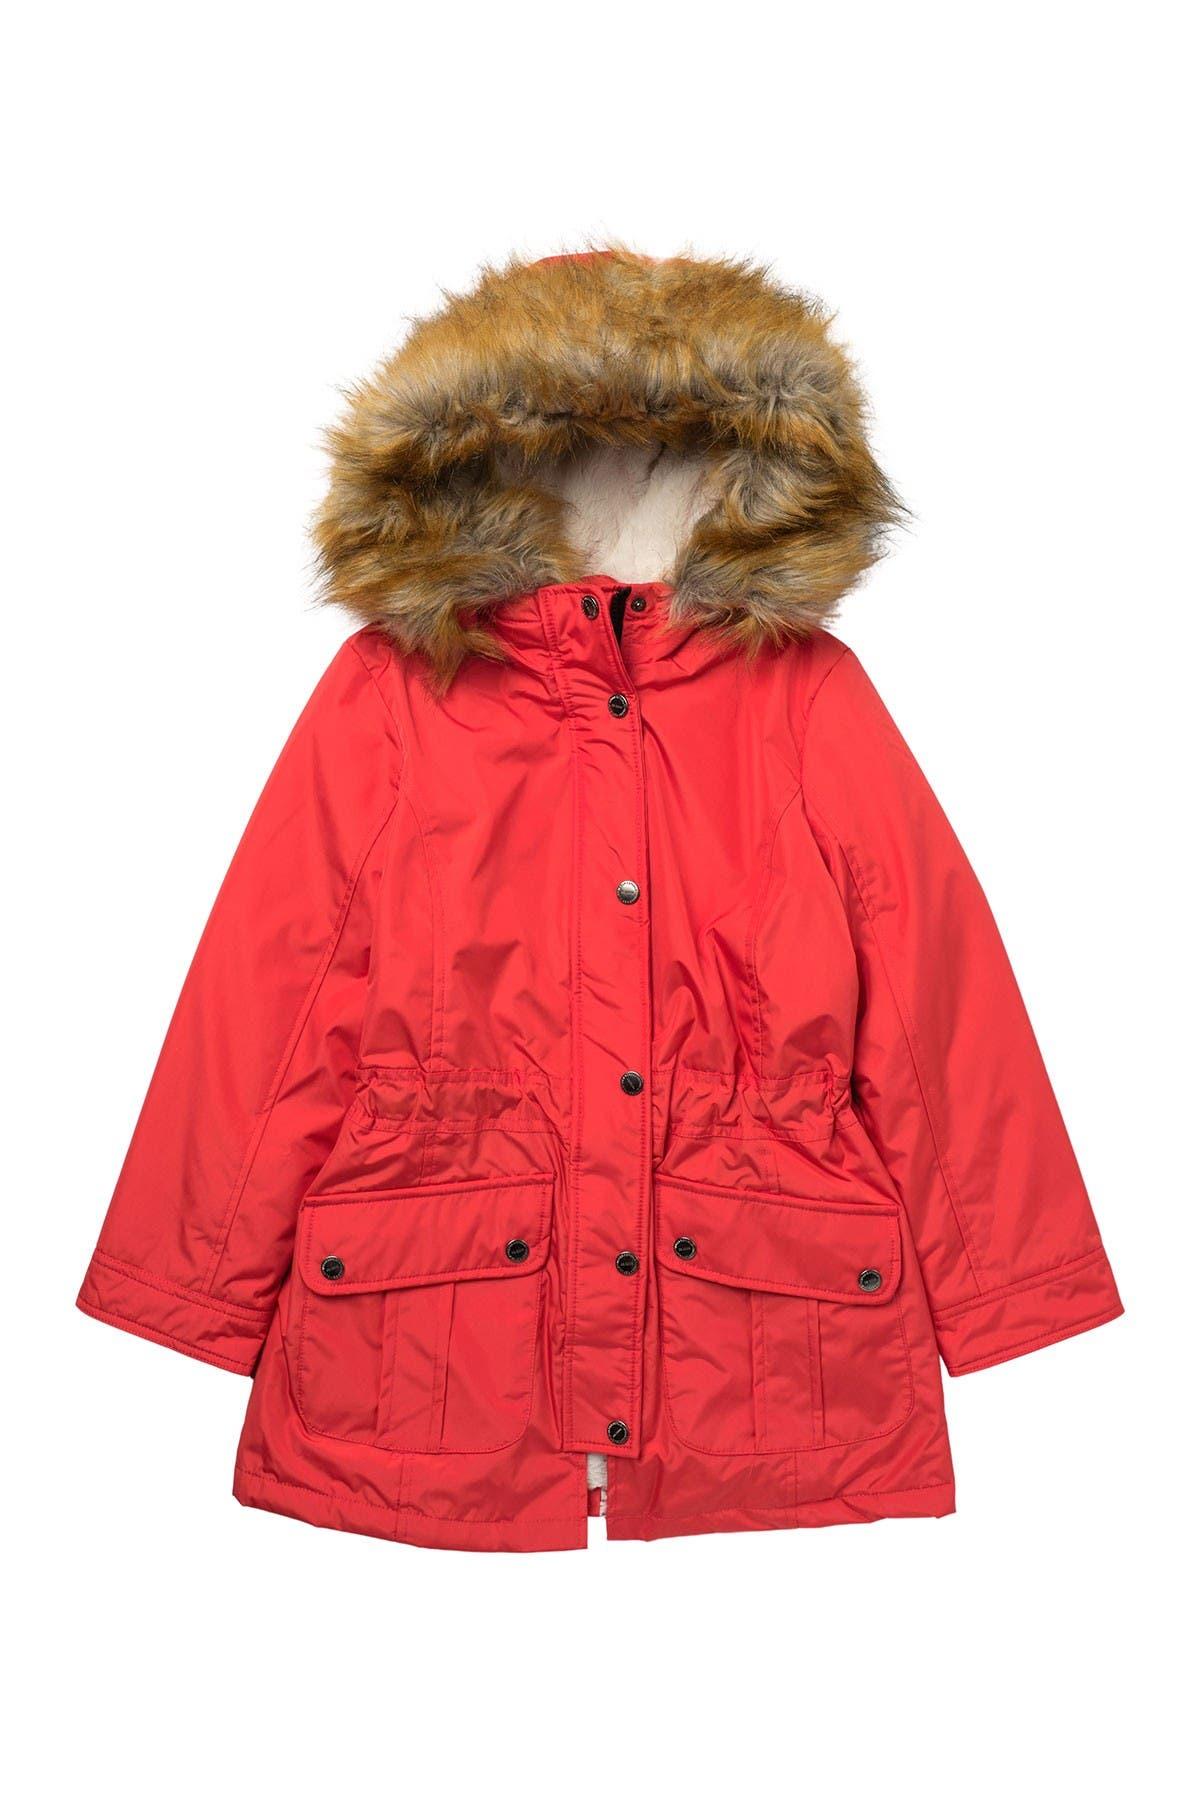 Image of Urban Republic FUR Micro Tech Anorak Jacket